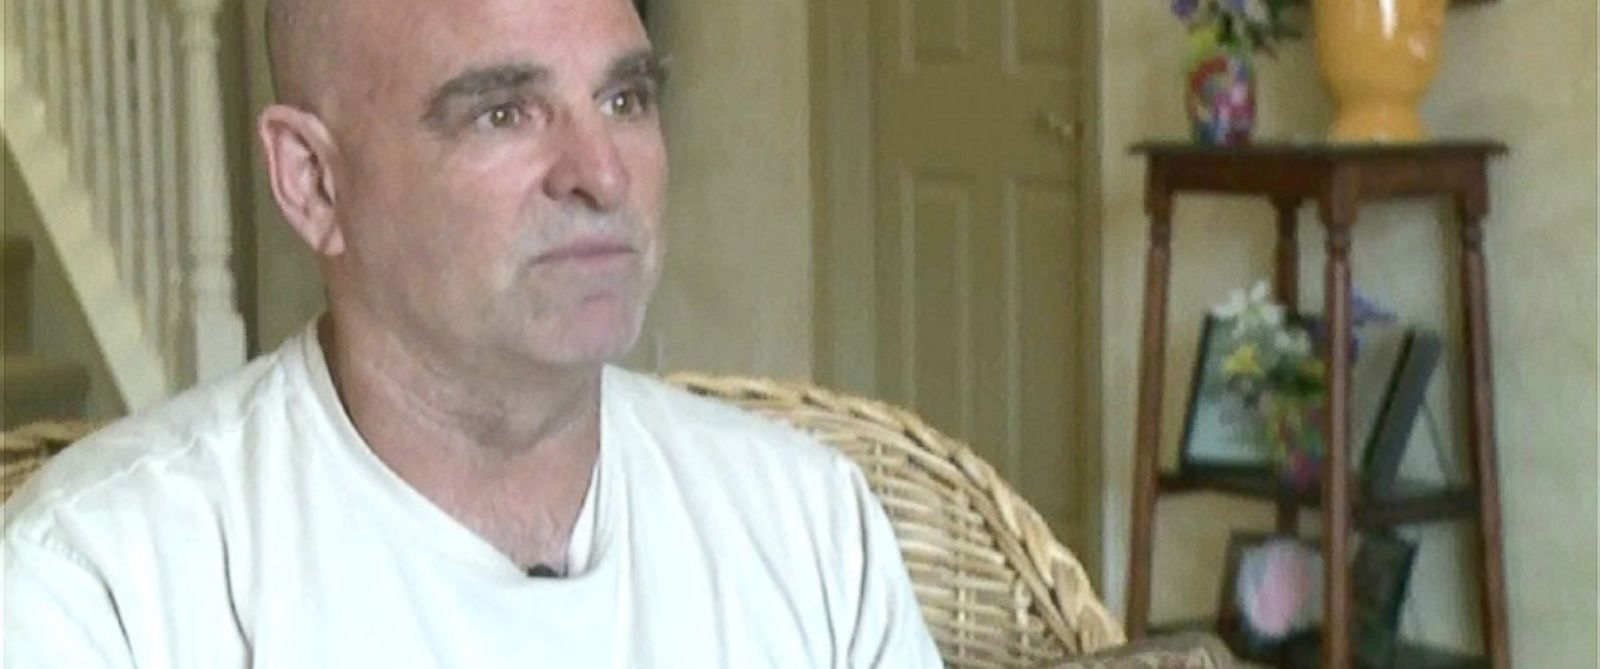 PHOTO: Mike Vilhauer, 58, spent five days lost in the wilderness without food.